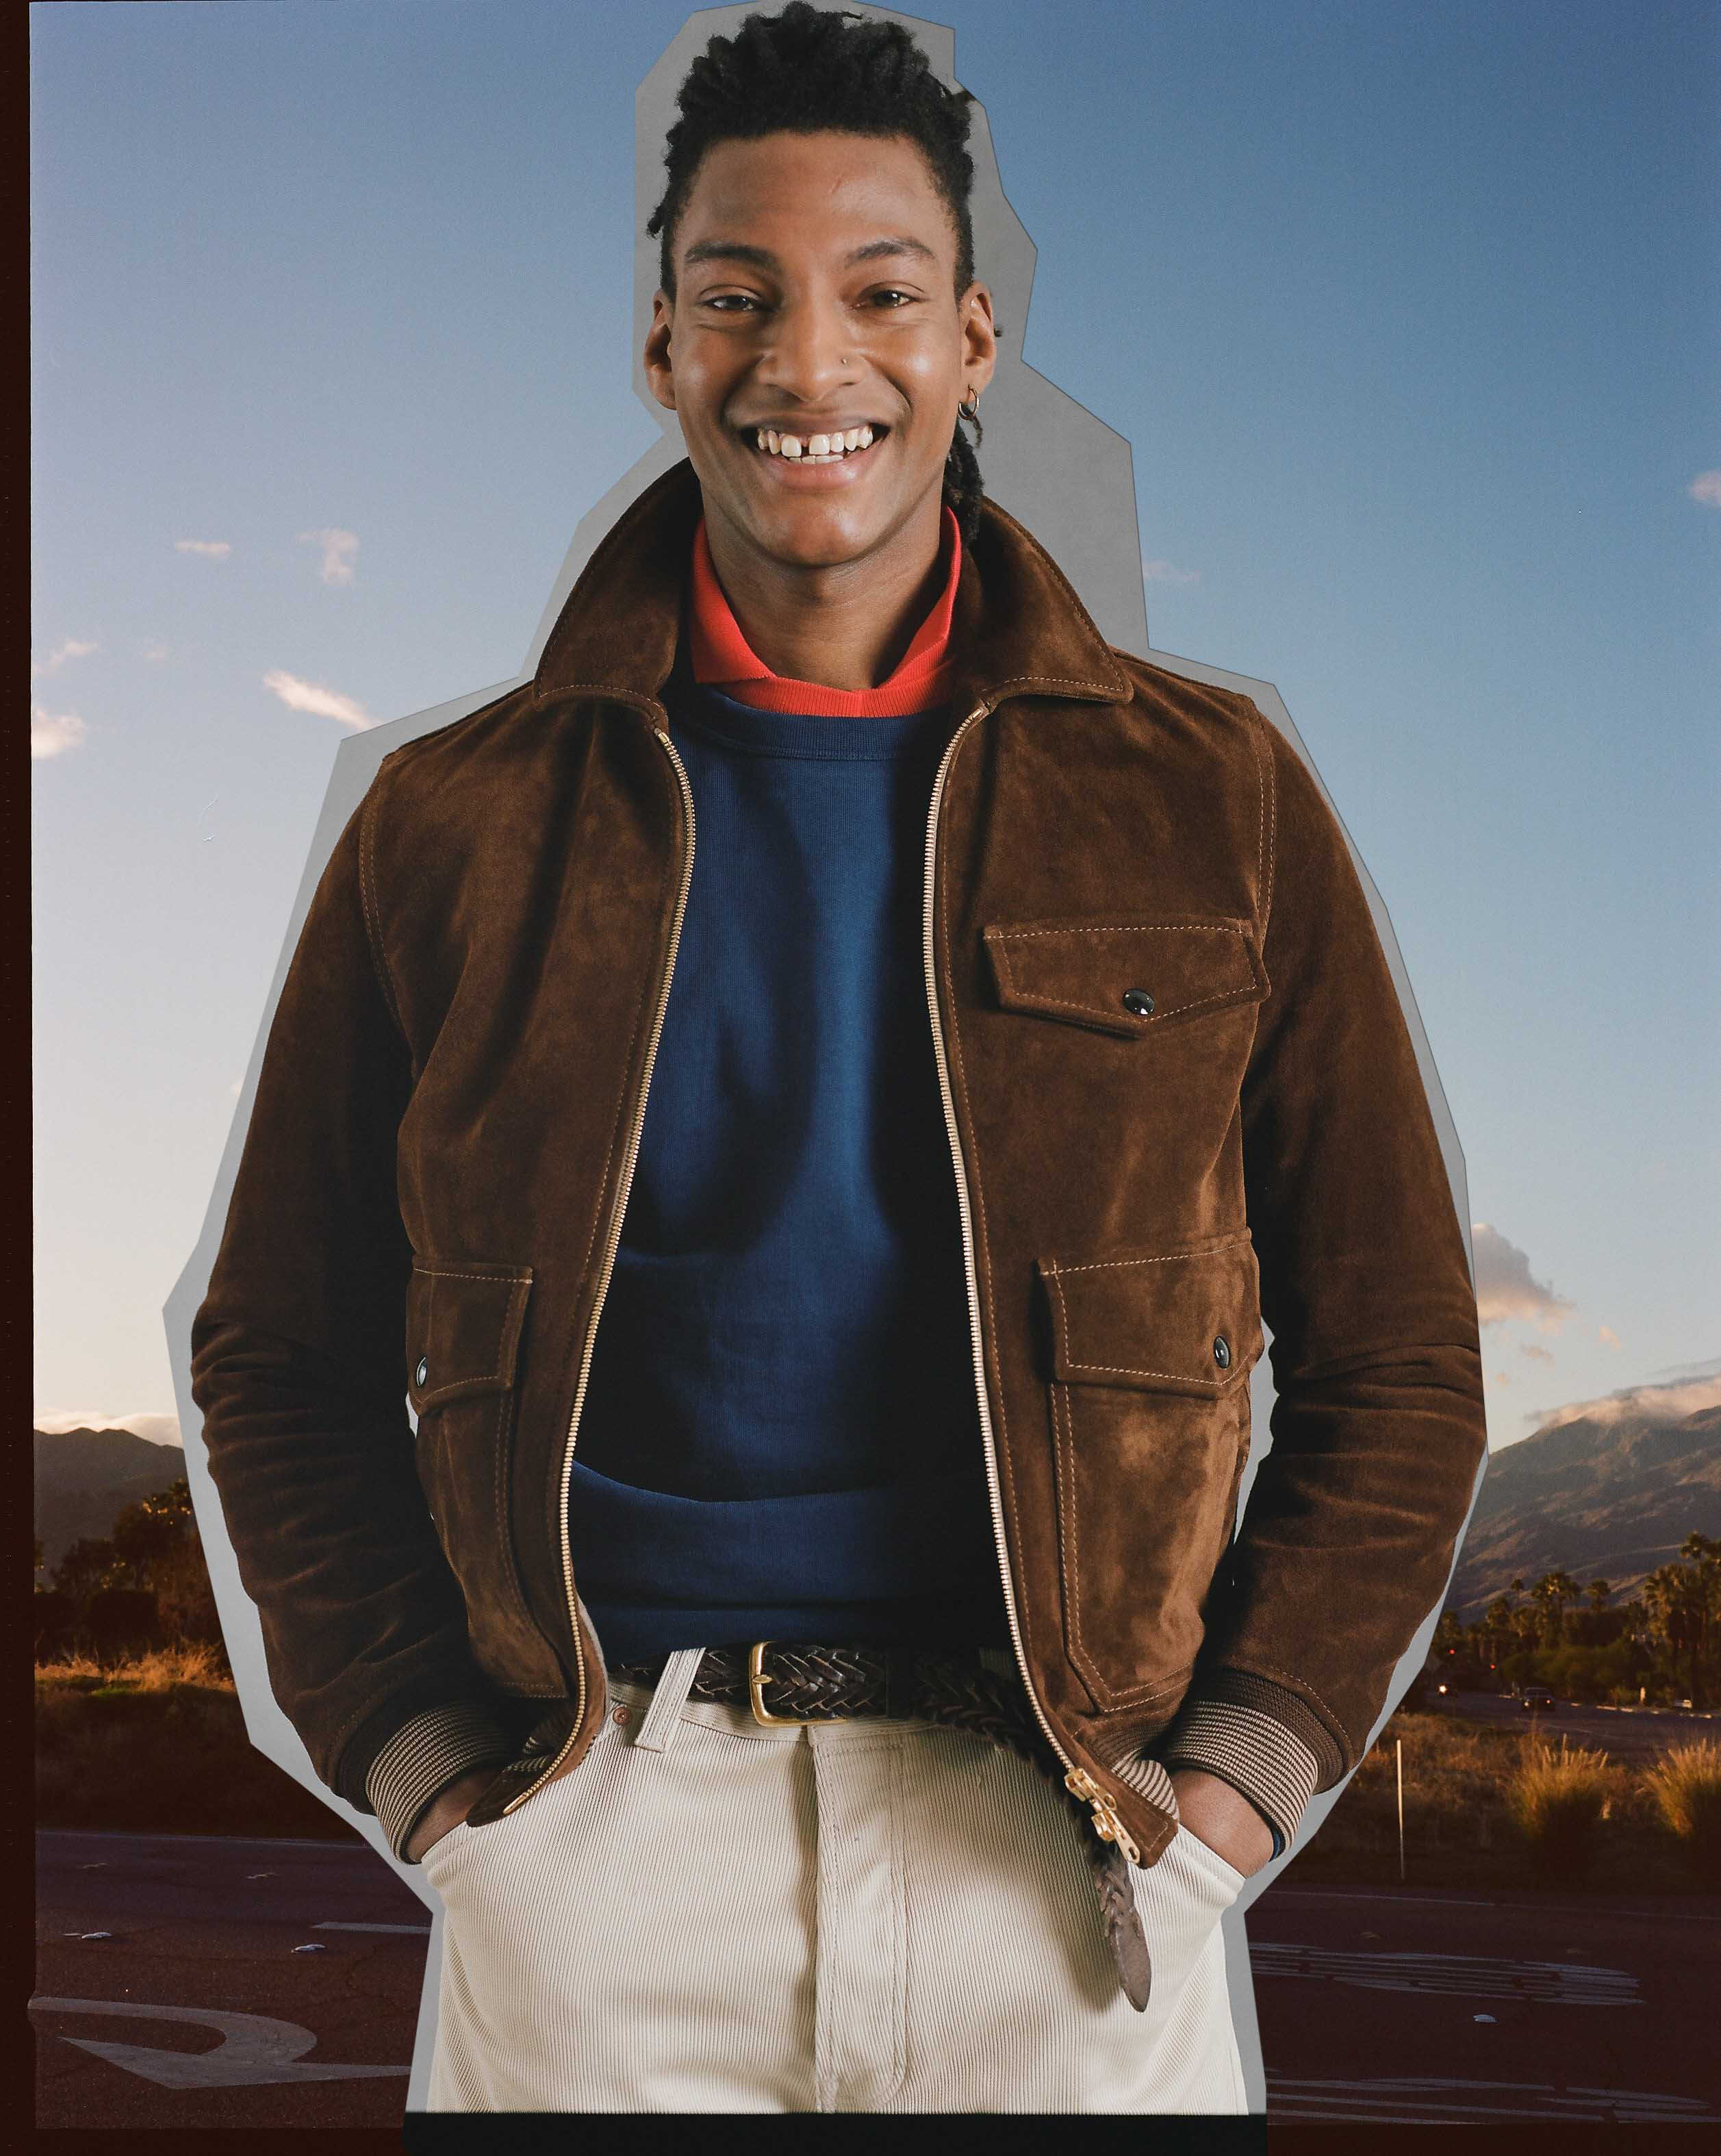 The Caramel Suede A-2 Bomber Jacket